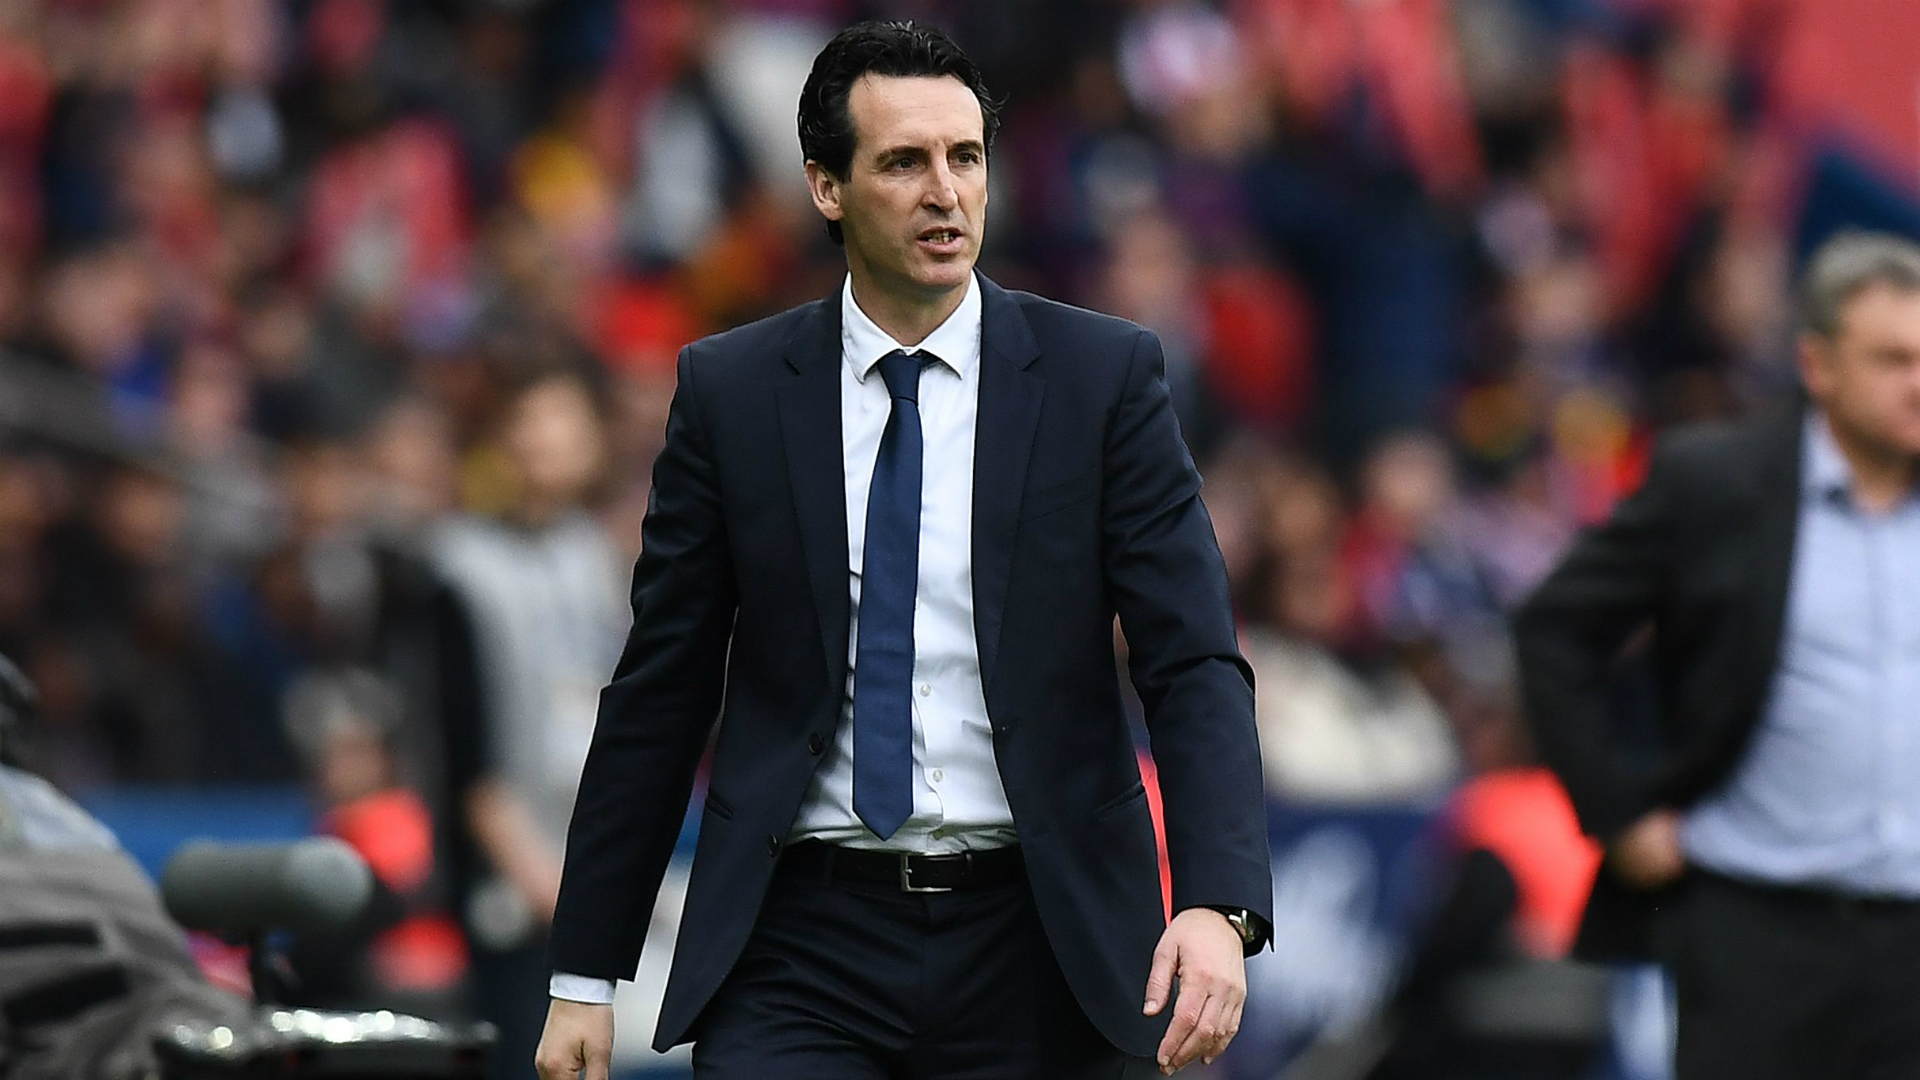 Emery appointed after secret vote says Arsenal chief FOOTBALL 1920x1080